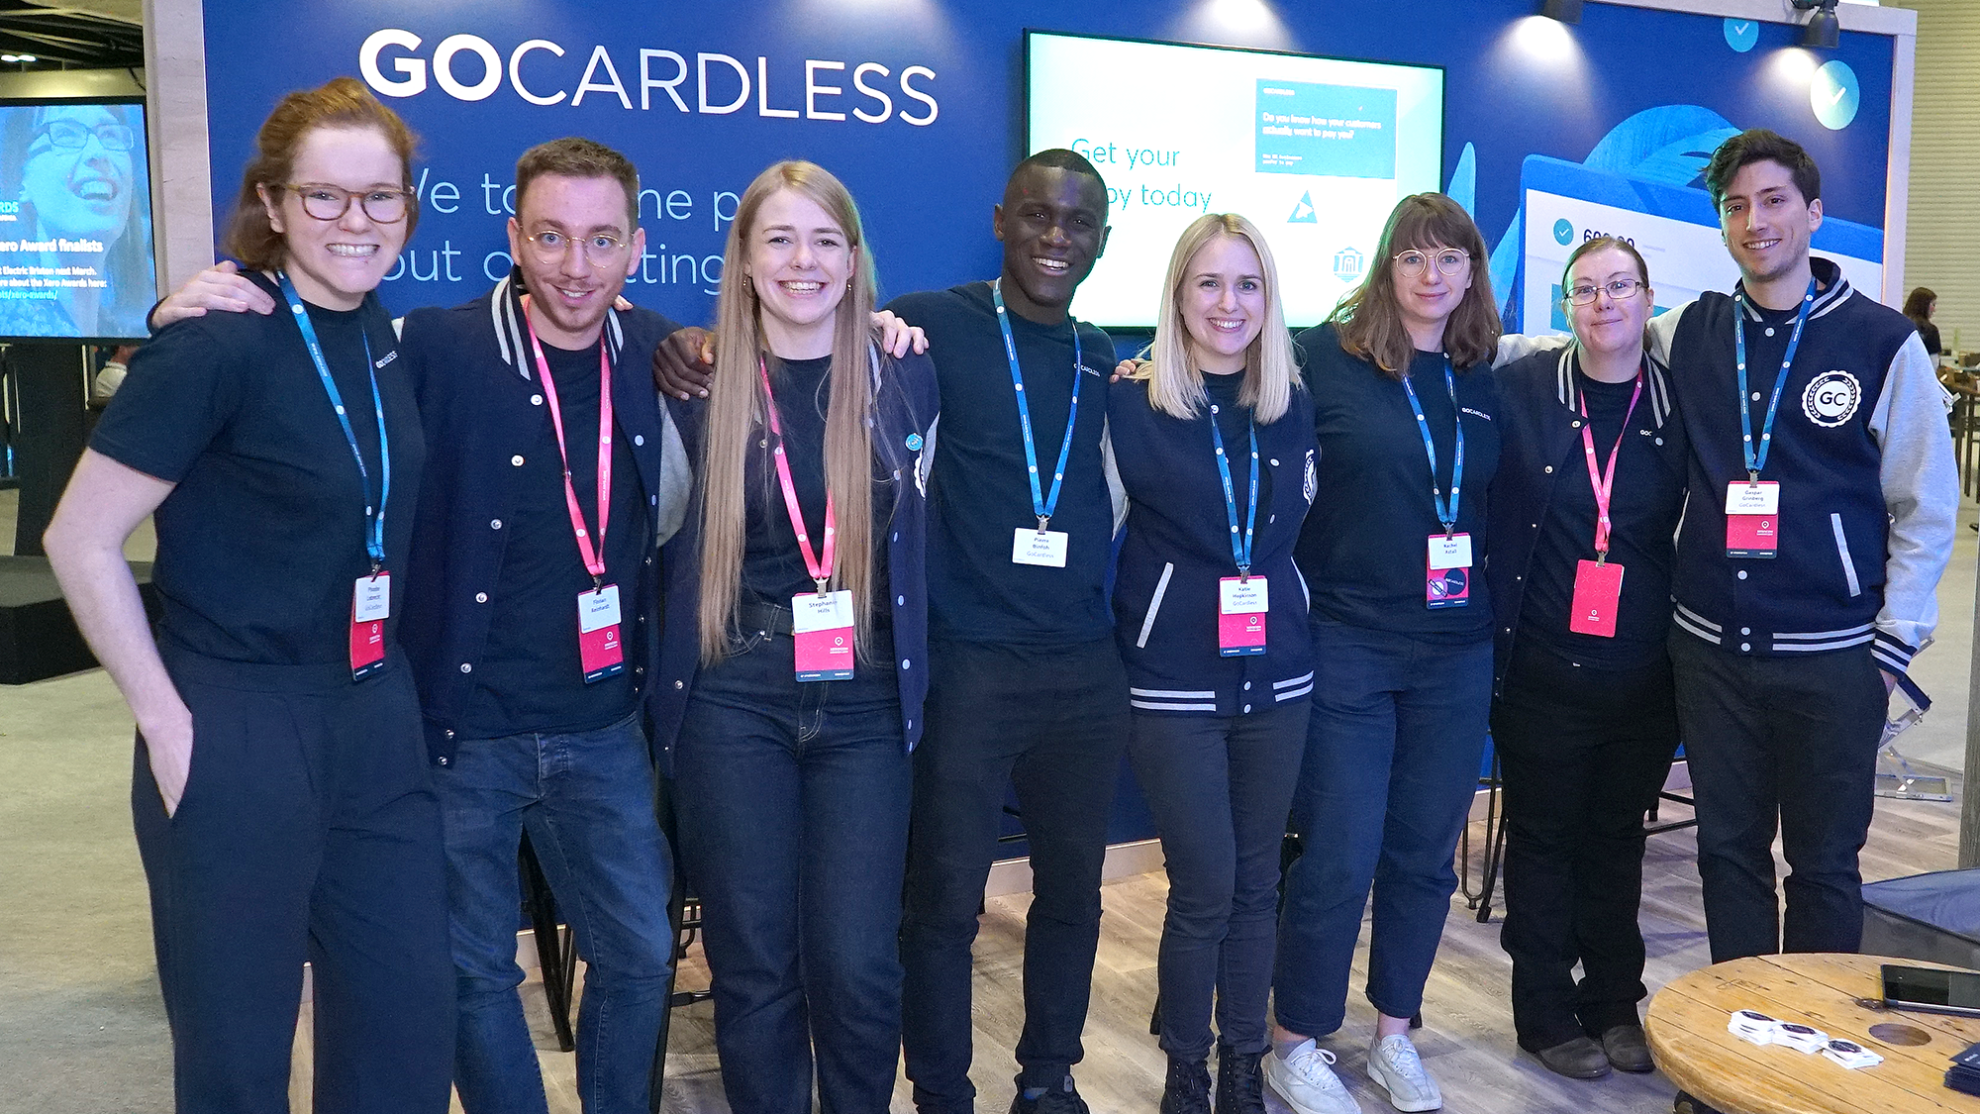 GoCardless team at Xerocon London 2019